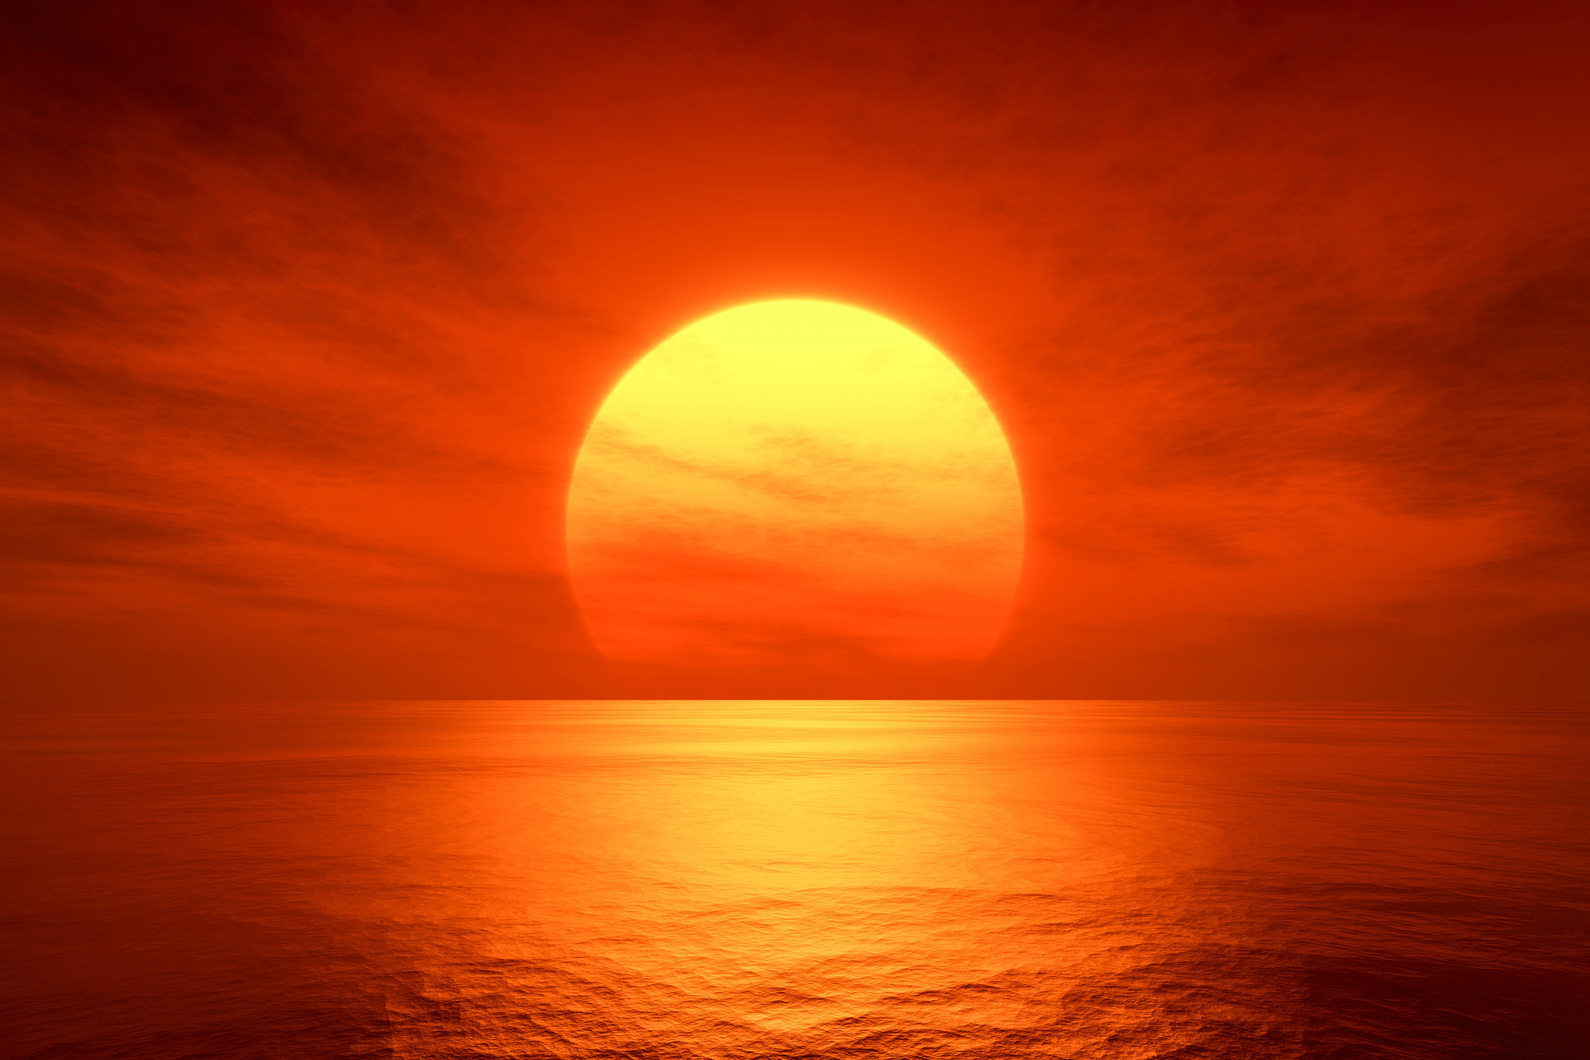 An image of a beautiful red sunset over the ocean